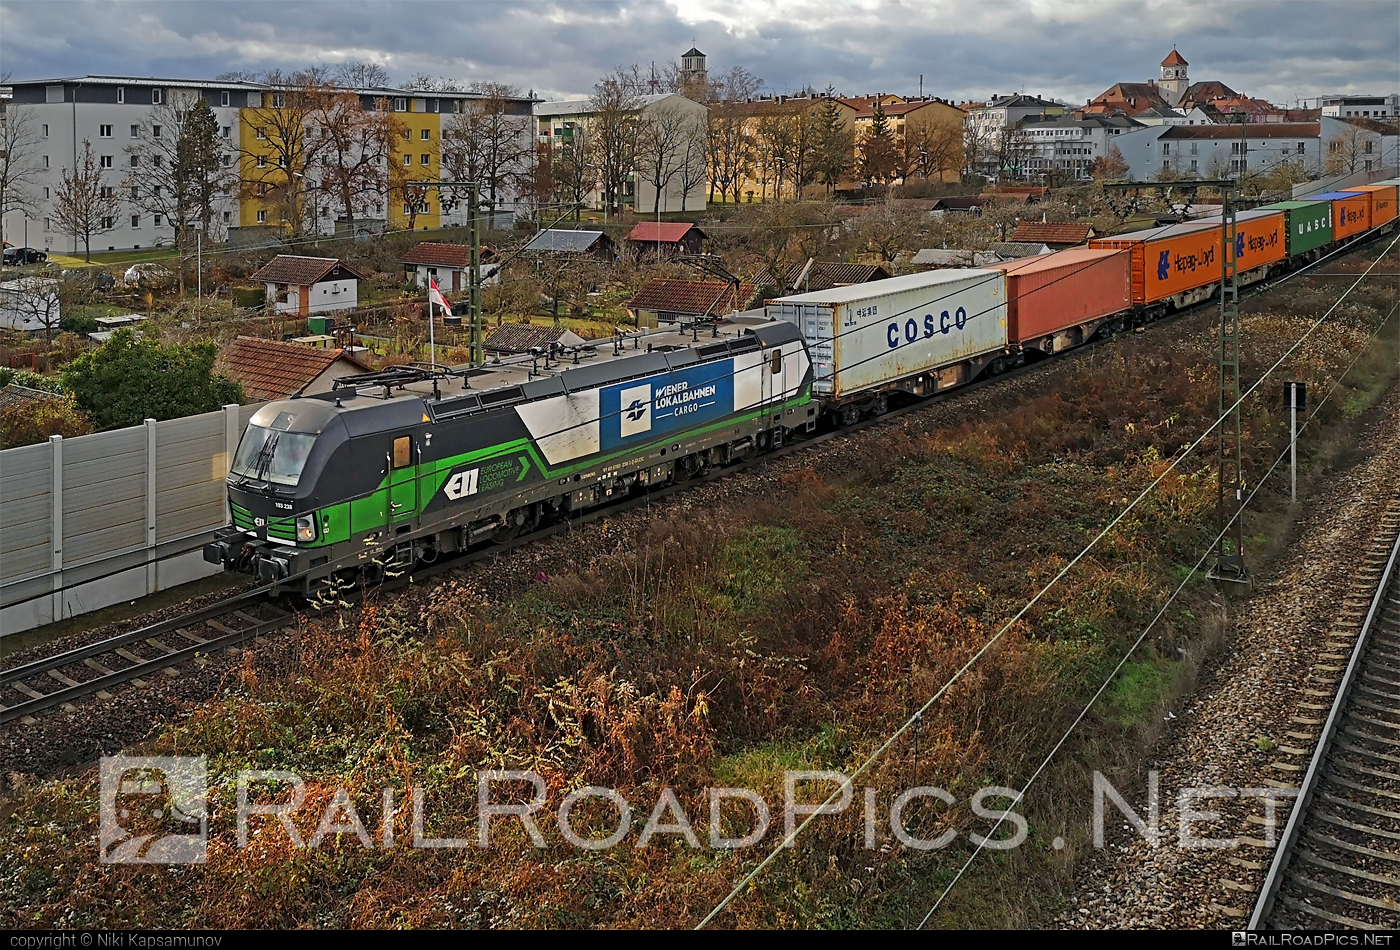 Siemens Vectron AC - 193 238 operated by Wiener Lokalbahnen Cargo GmbH #ell #ellgermany #eloc #europeanlocomotiveleasing #flatwagon #siemens #siemensvectron #siemensvectronac #vectron #vectronac #wienerlokalbahnencargo #wienerlokalbahnencargogmbh #wlc